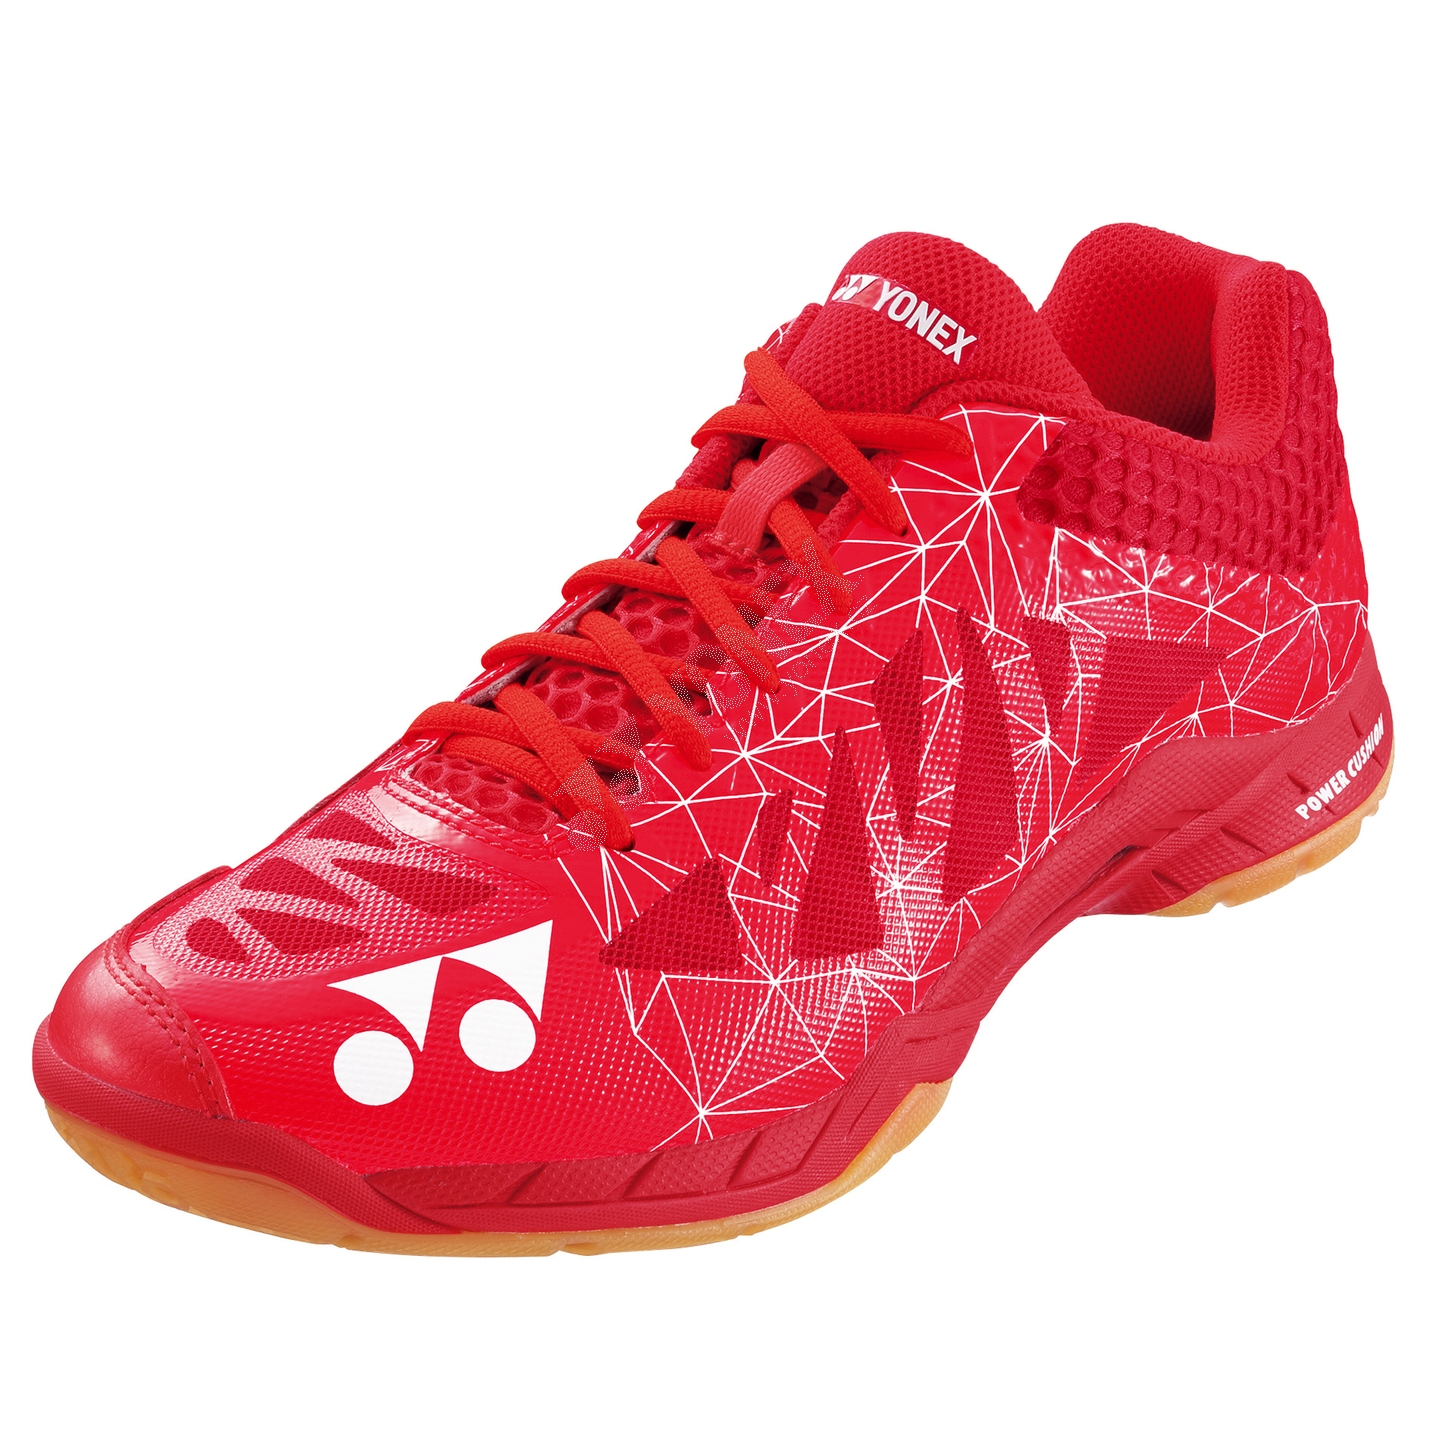 Yonex Power Cushion Aerus 2 MX Red